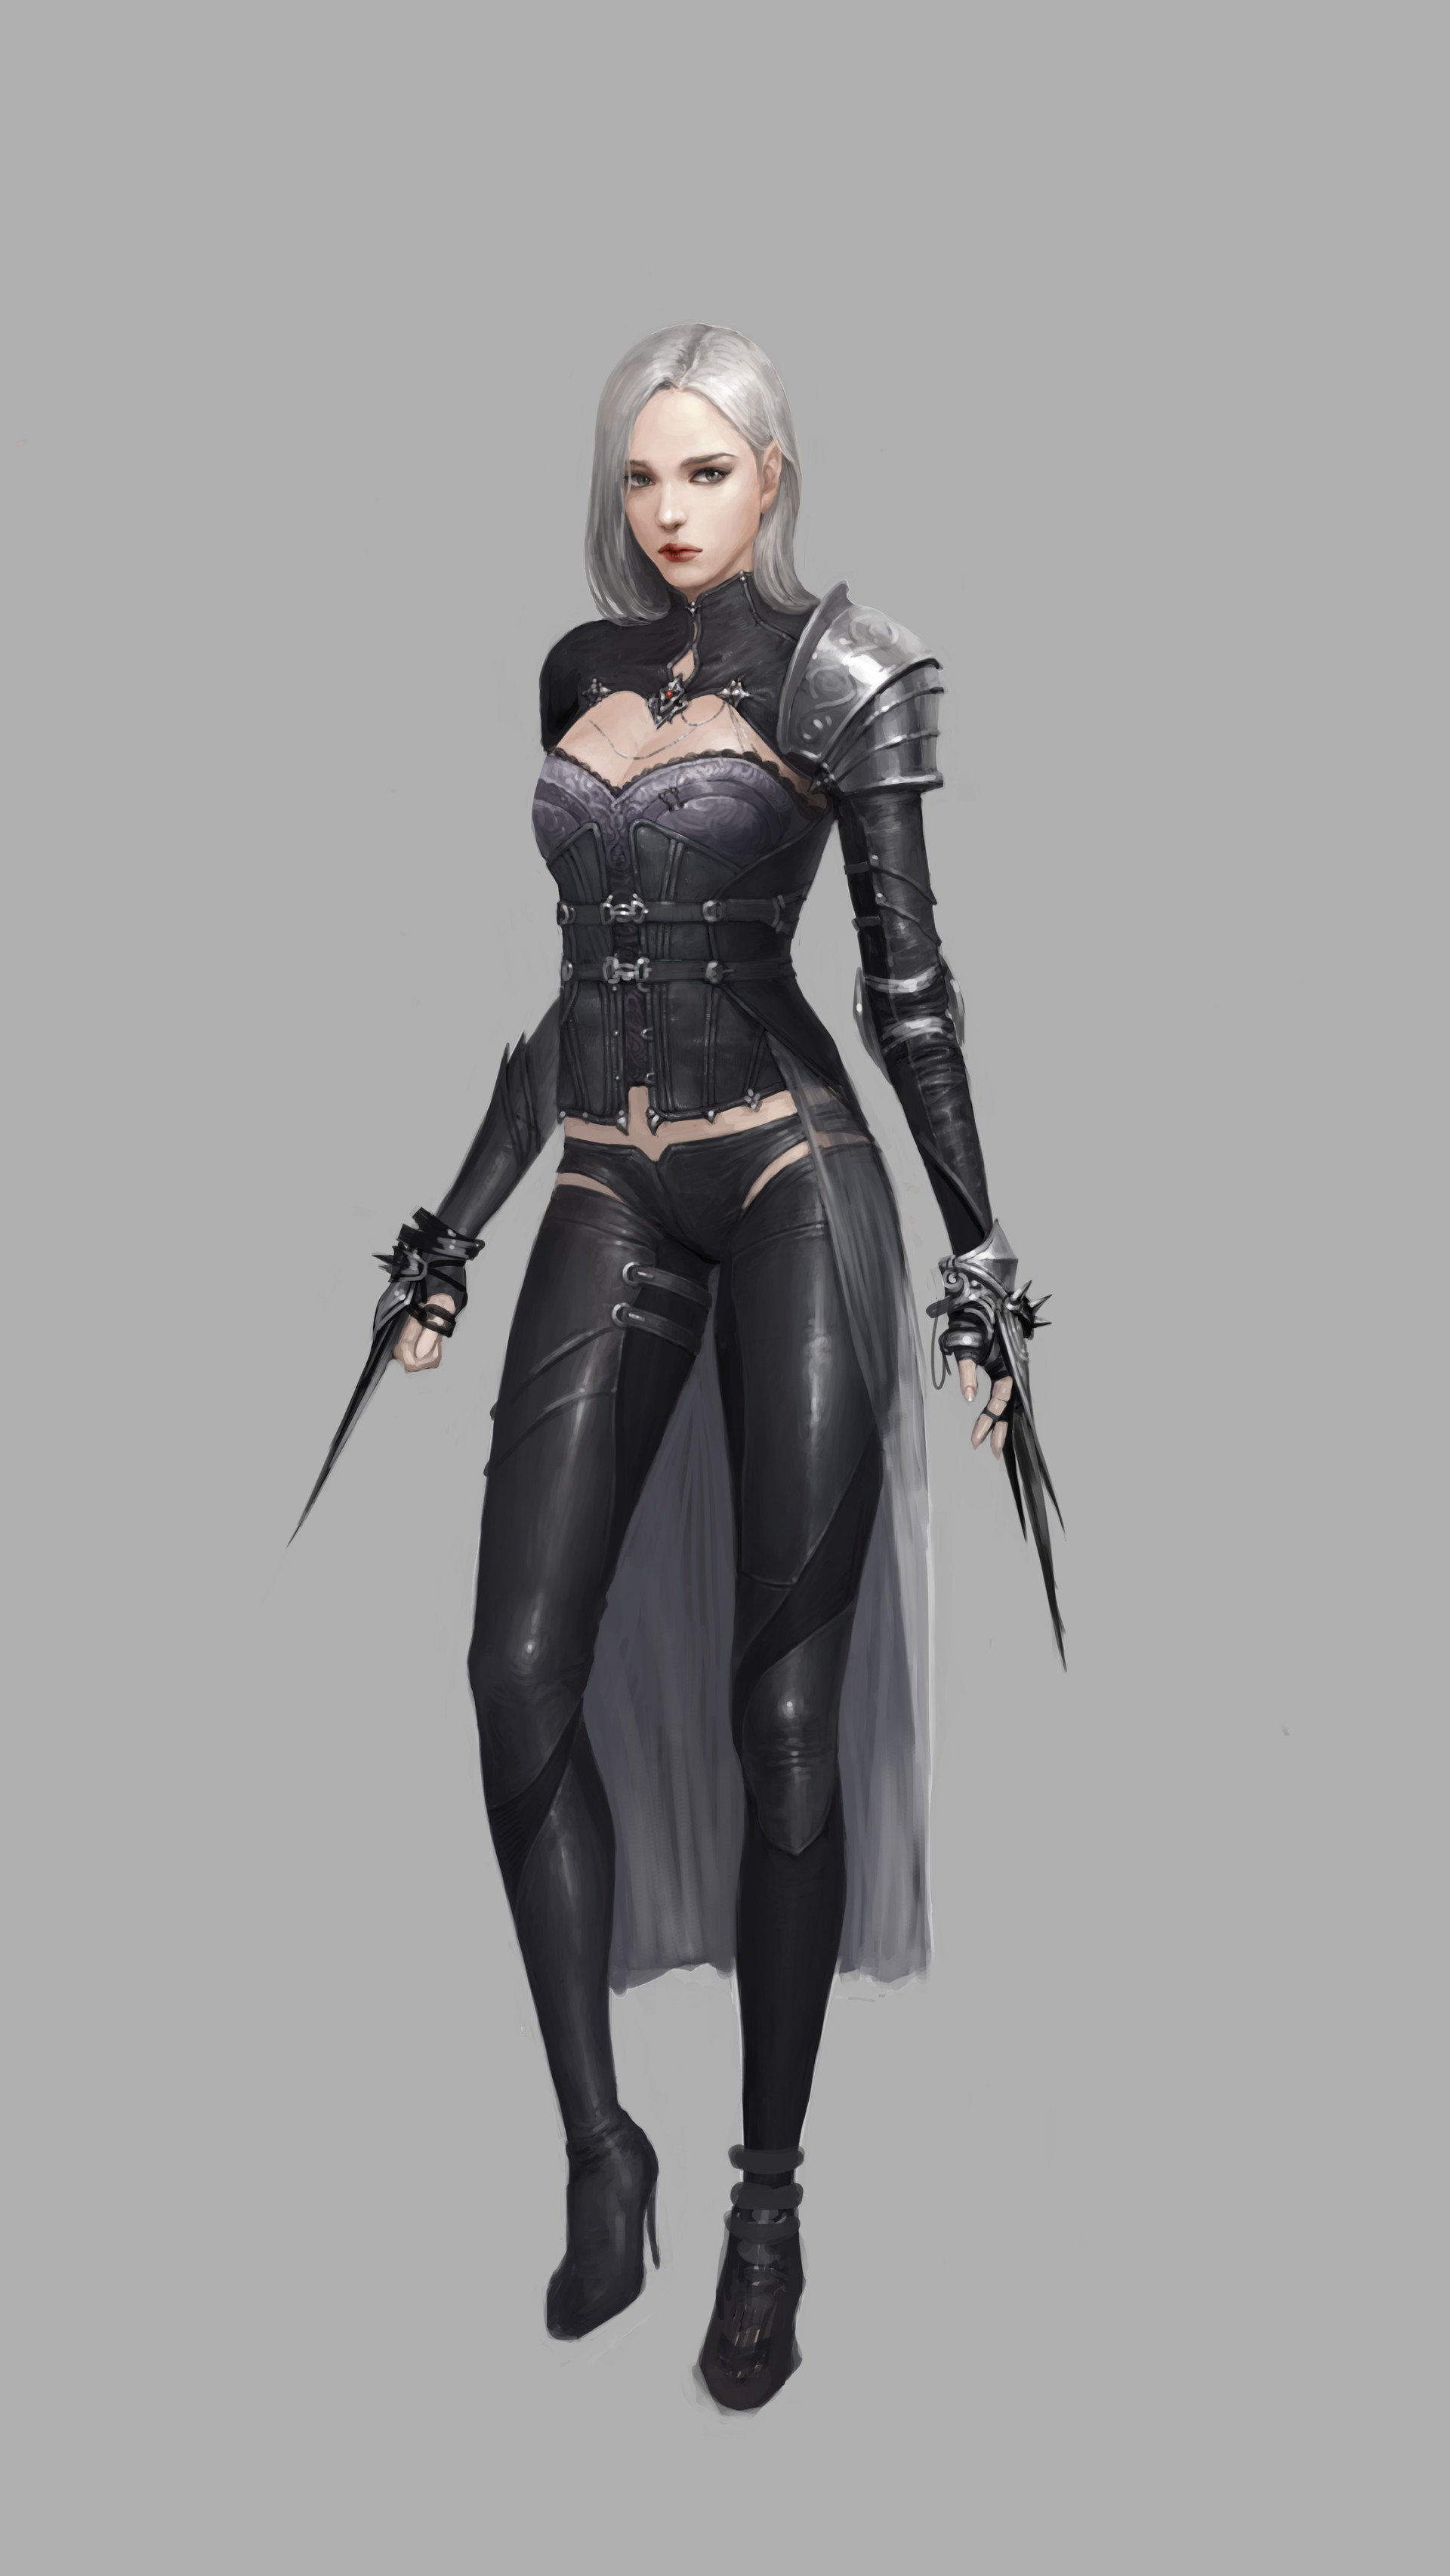 ArtStation - Dark Elf, Jiyeon Ryu